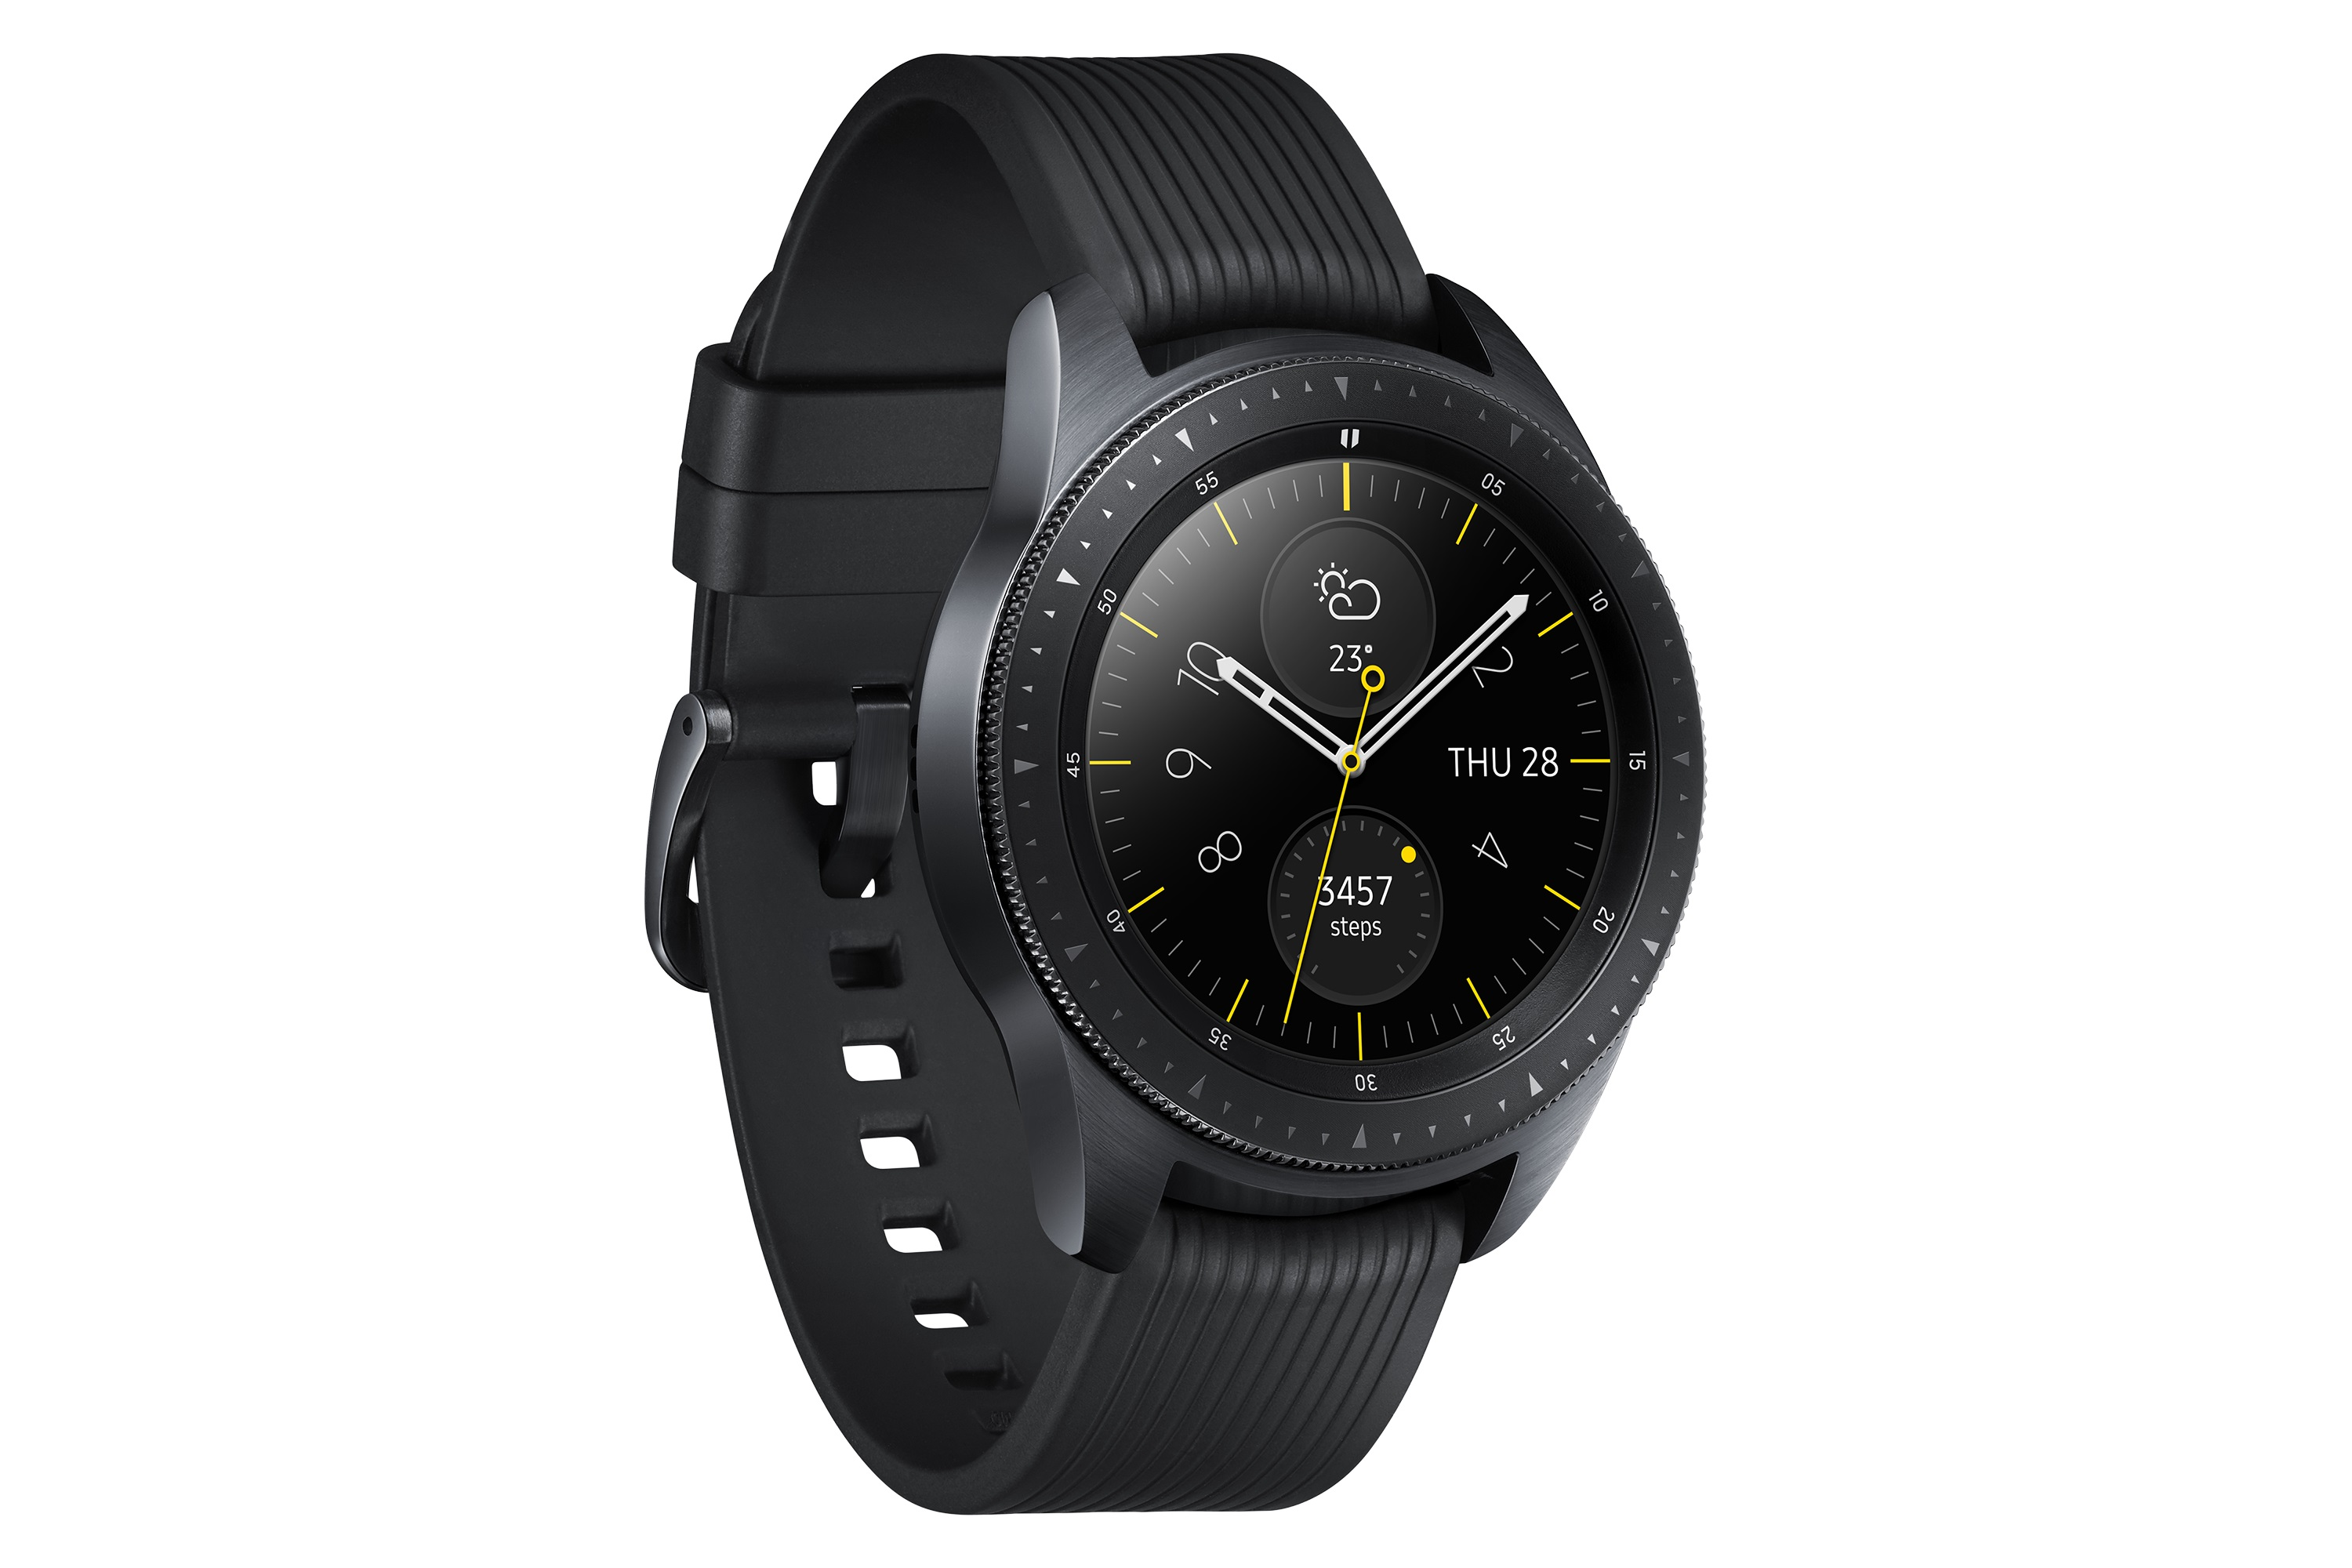 Samsung Galaxy Watch Negro Perspectiva de Medianoche